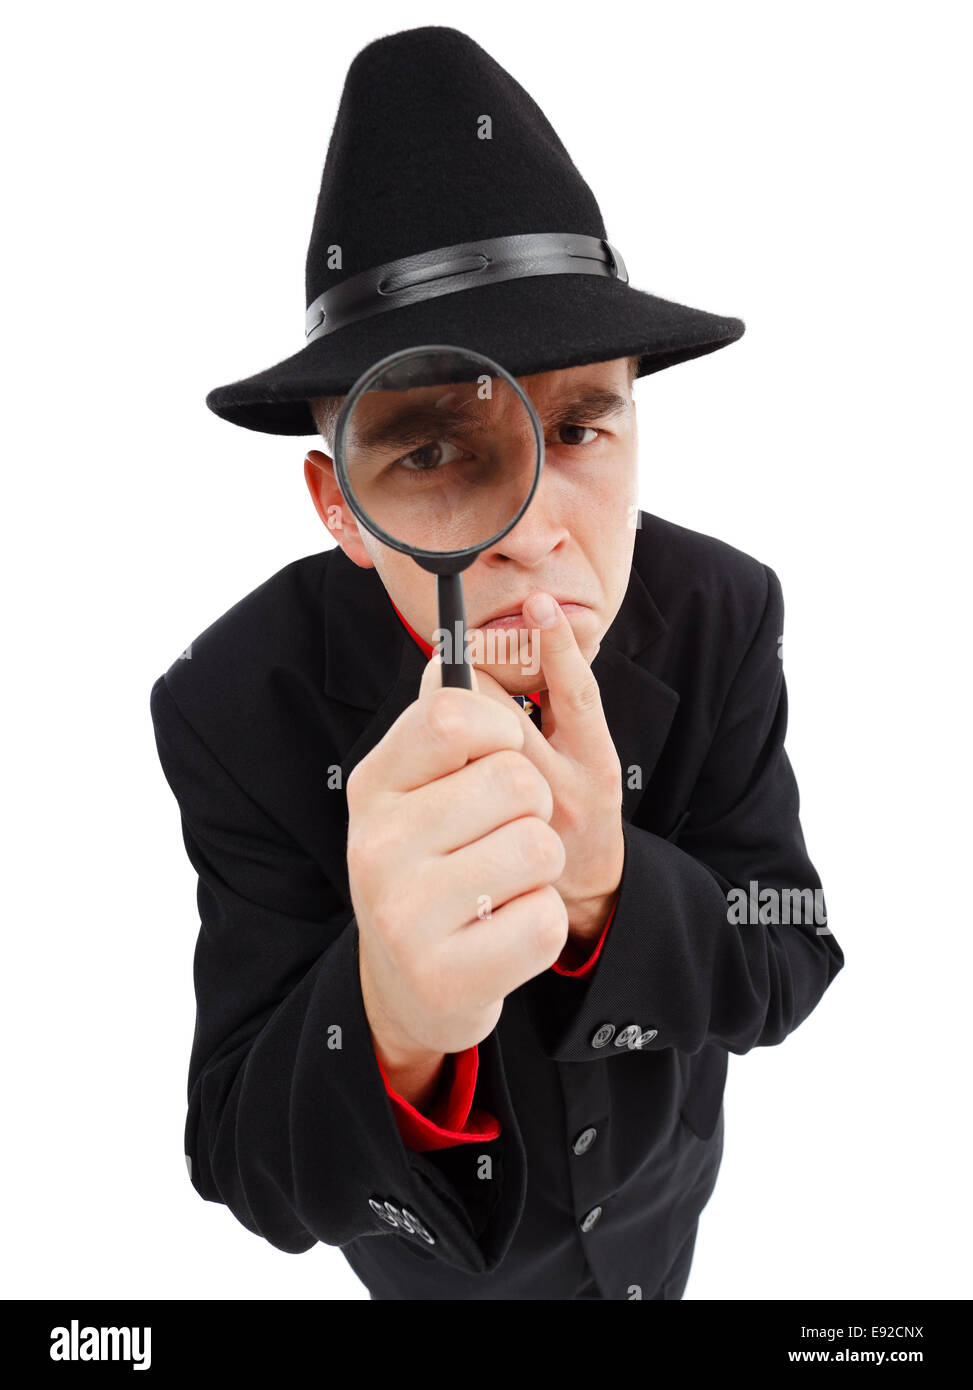 Detective with big hat, thumb on mouth, looking through magnifying glass seriously - Stock Image